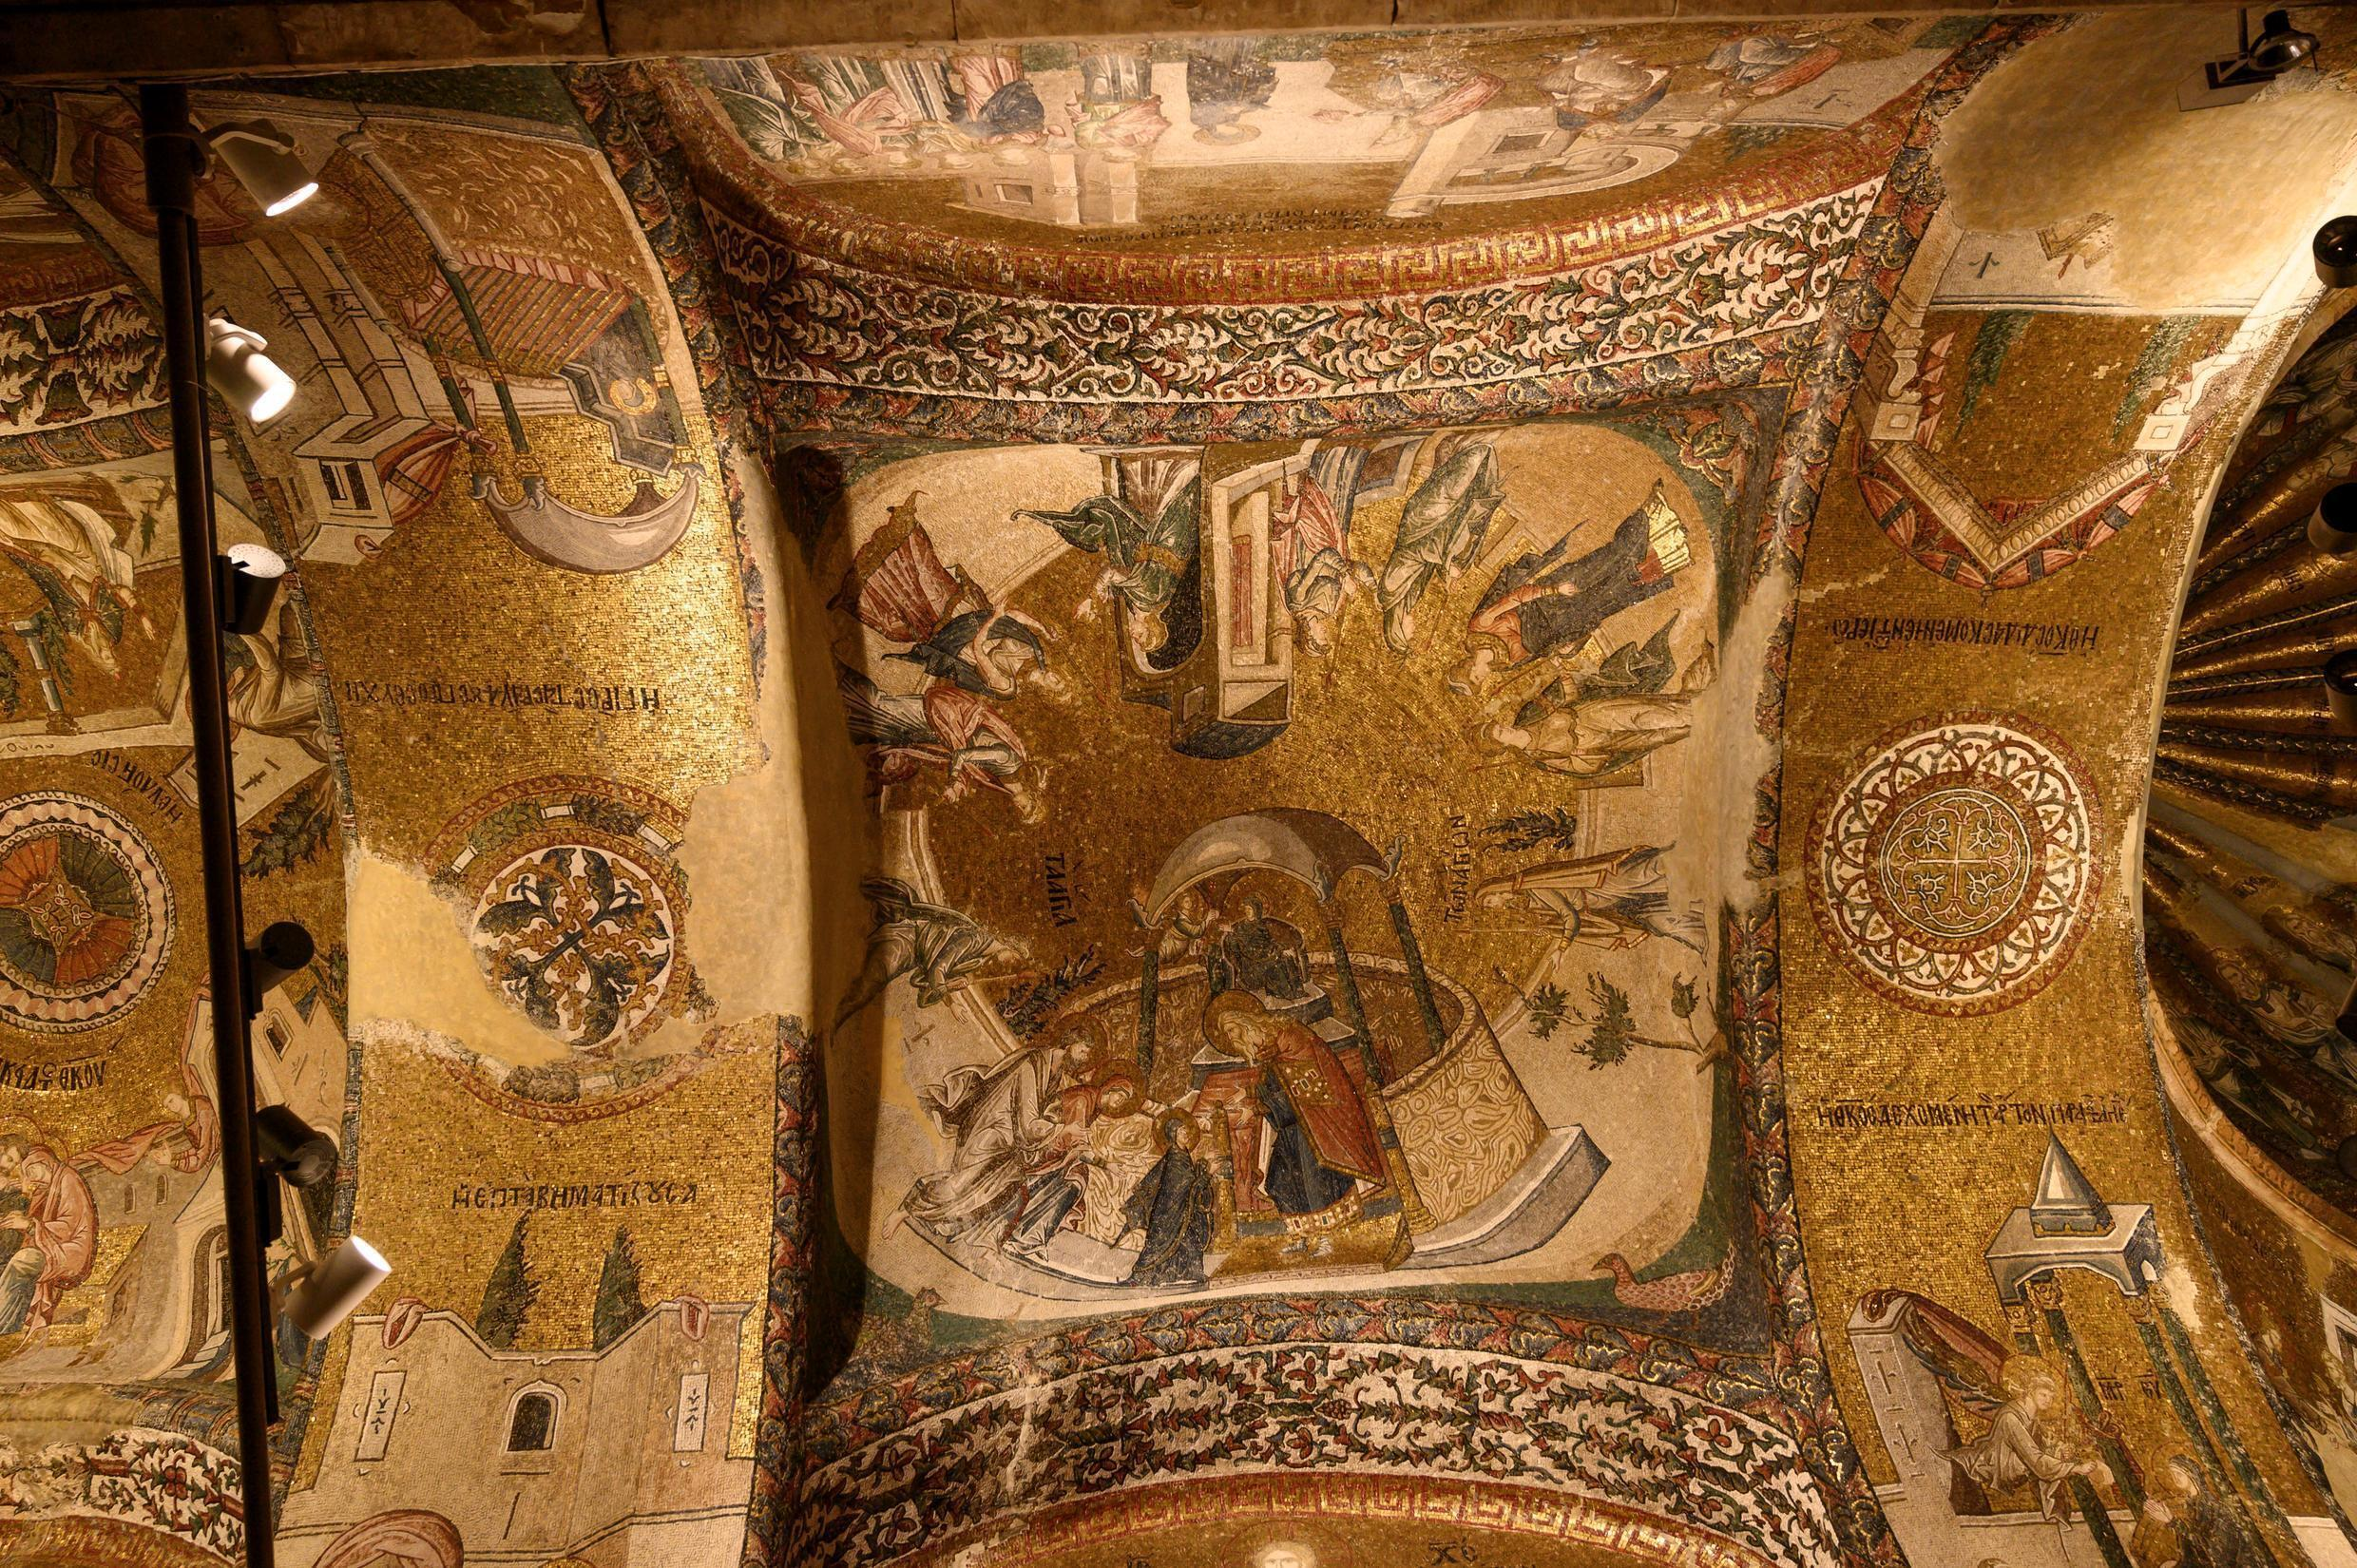 A view of the ceiling of the Chora or Kariye Museum, formally the Church of the Holy Saviour, a medieval Byzantine Greek Orthodox church, decorated with 14th-century frescoes of the Last Judgement, in the Fatih district in Istanbul on August 21, 2020.